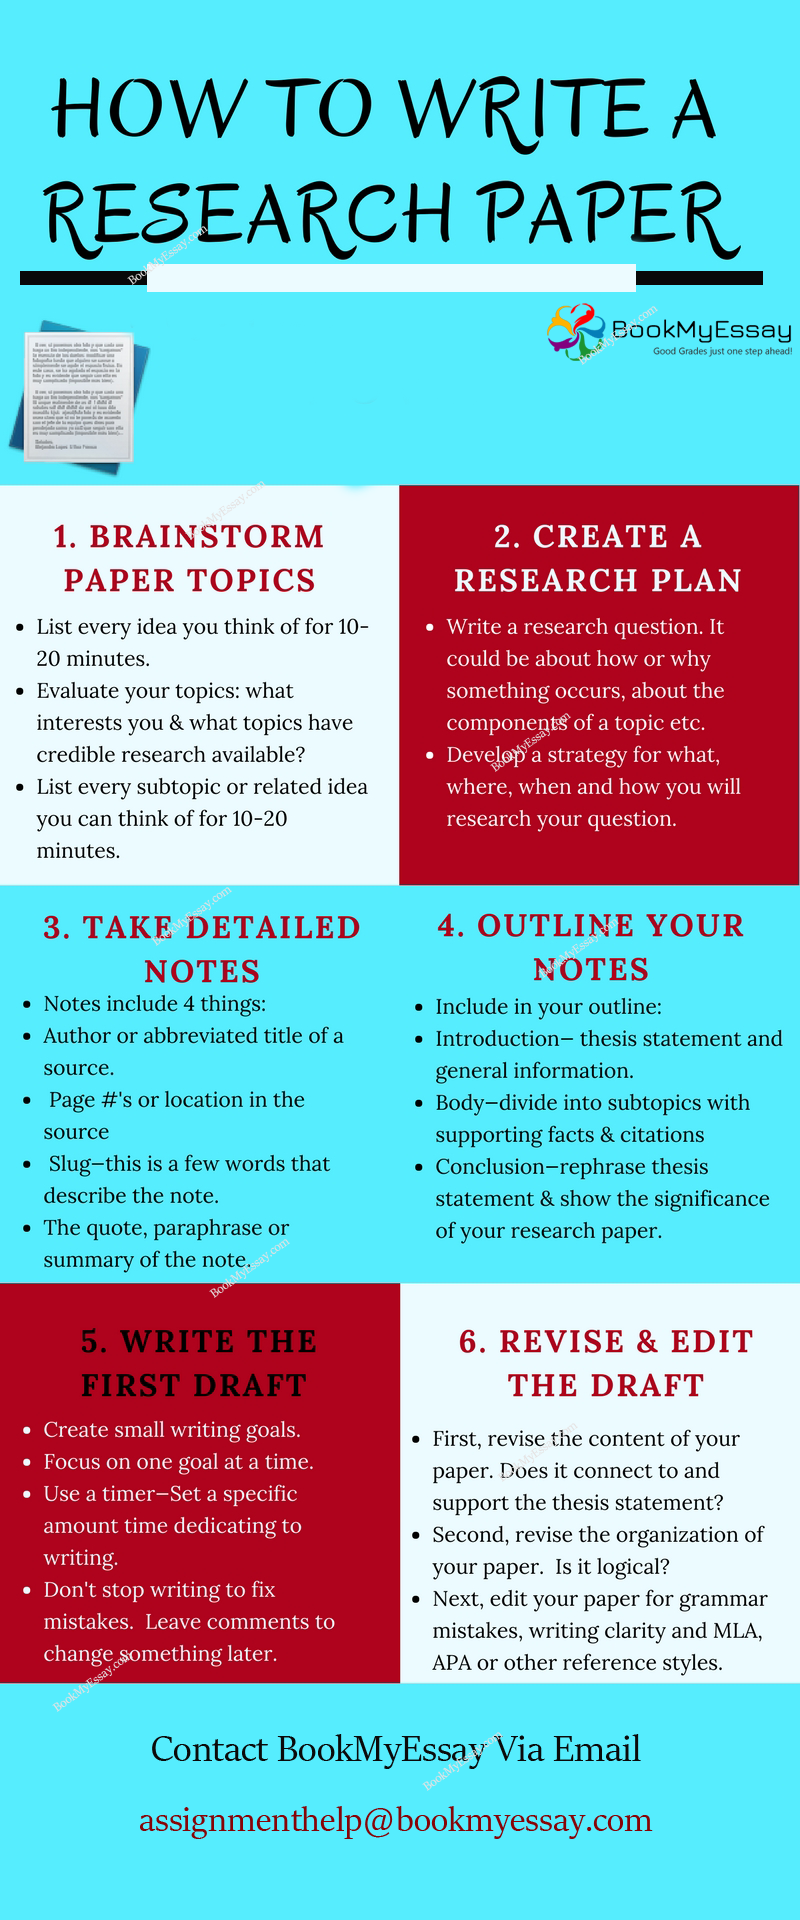 003 Research Paper Writing Service Dreaded Services In India Best Academic Online Full